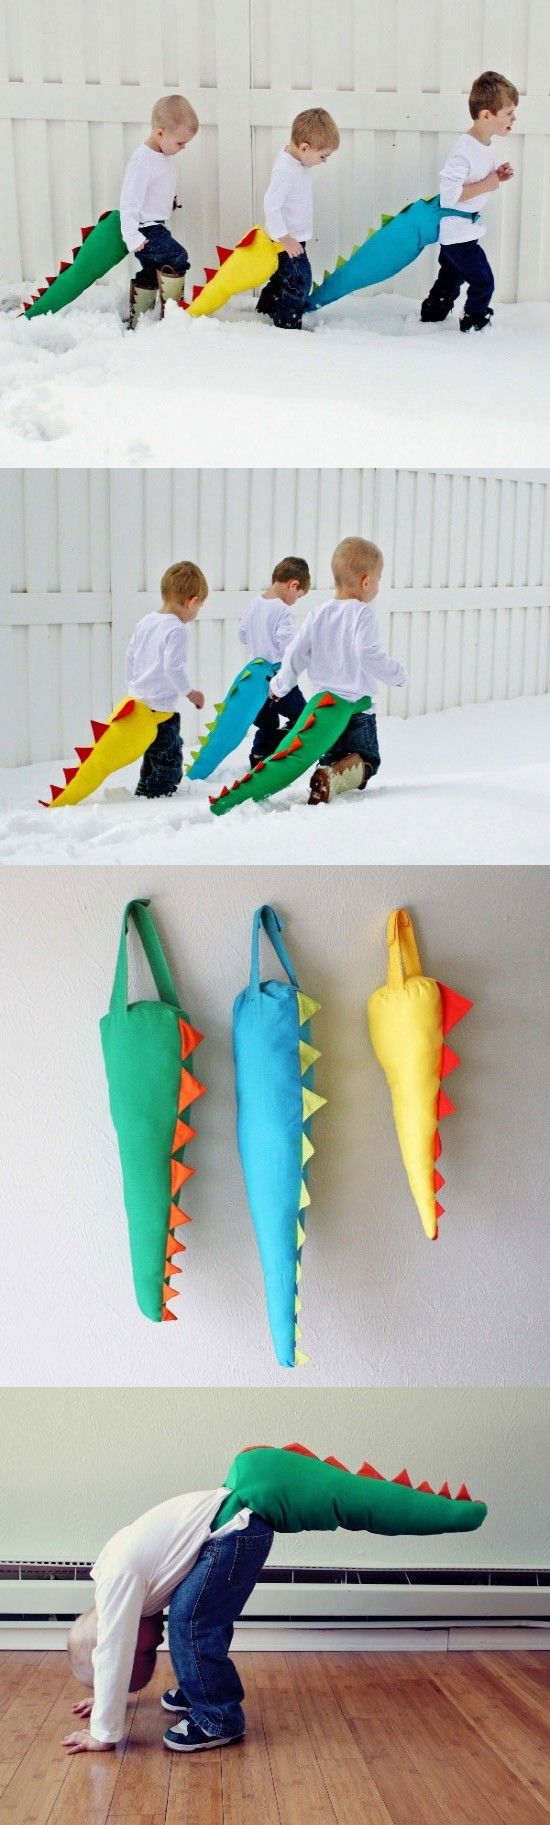 Lunalus Diary: DIY Dinosaur Tail Real link: http://www.running-w-scissors.com/2011/03/dinosaur-tails.html